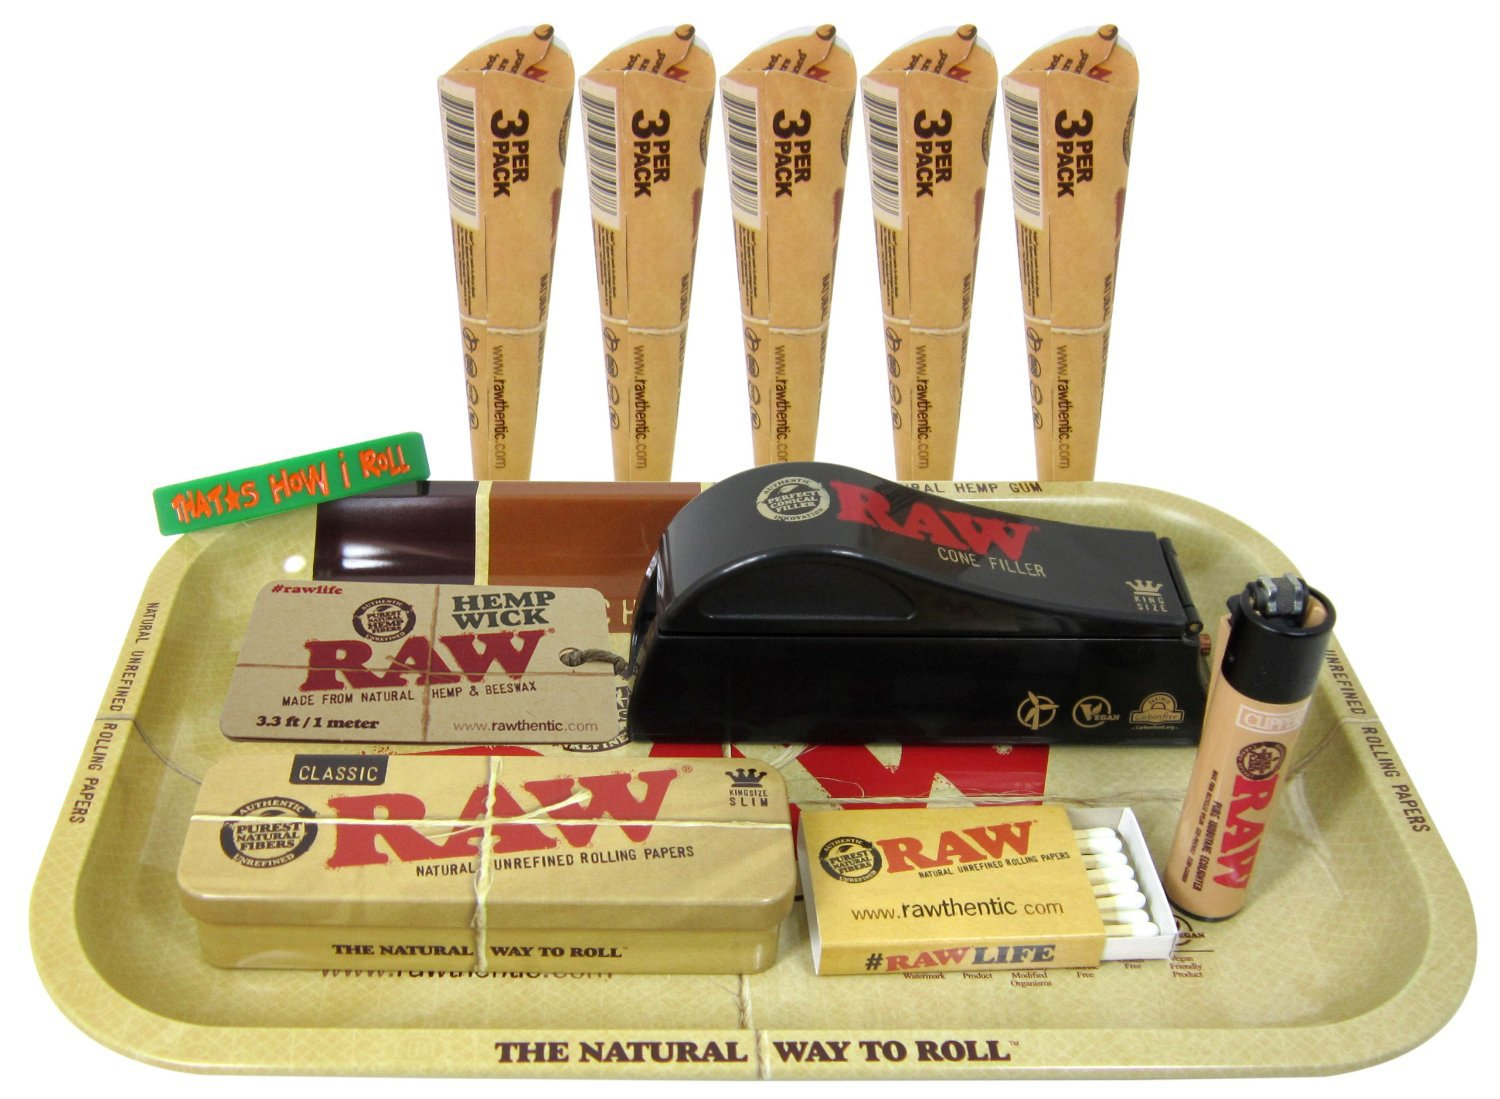 Bundle - 12 Items - RAW King Size Cone Filler with Pre Rolled Cones, Tin, Hemp Wick, Rolling Tray and More by RAW